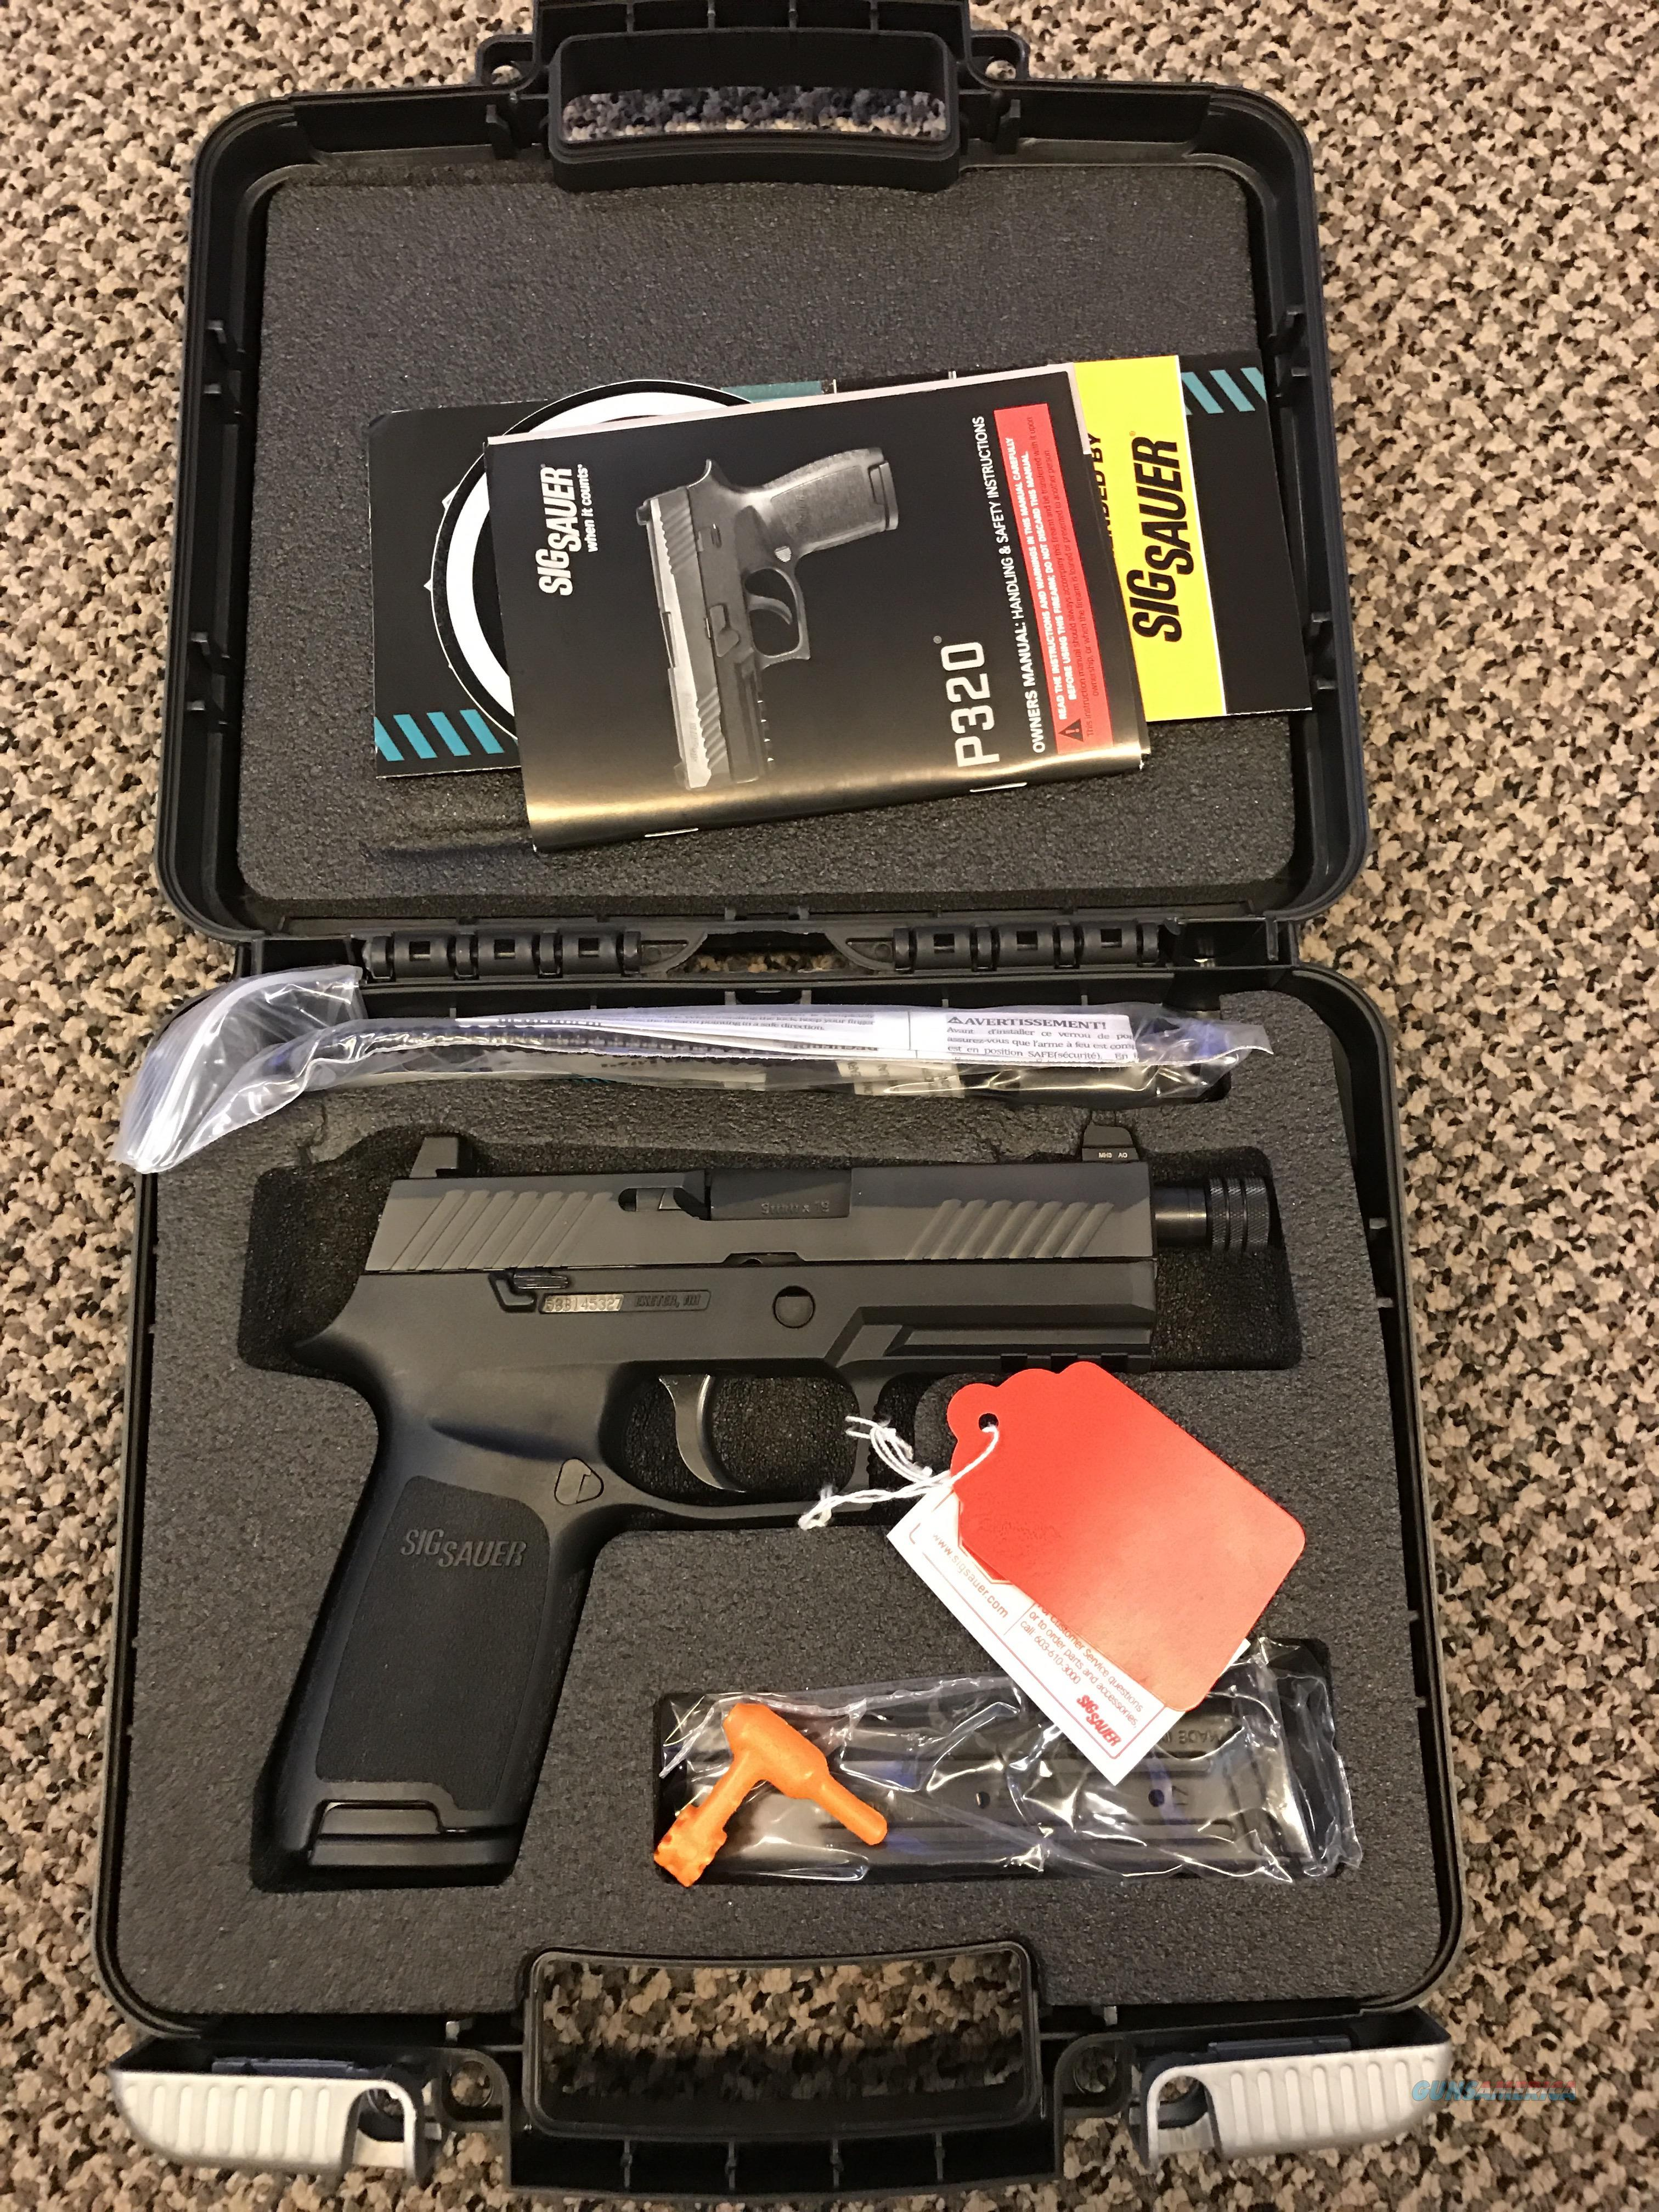 SIG SAUER P320 CARRY 17 ROUND 9MM THREADED 3.9 INCH BBL HIGH NIGHT SIGHTS NEW IN BOX  Guns > Pistols > Sig - Sauer/Sigarms Pistols > P320